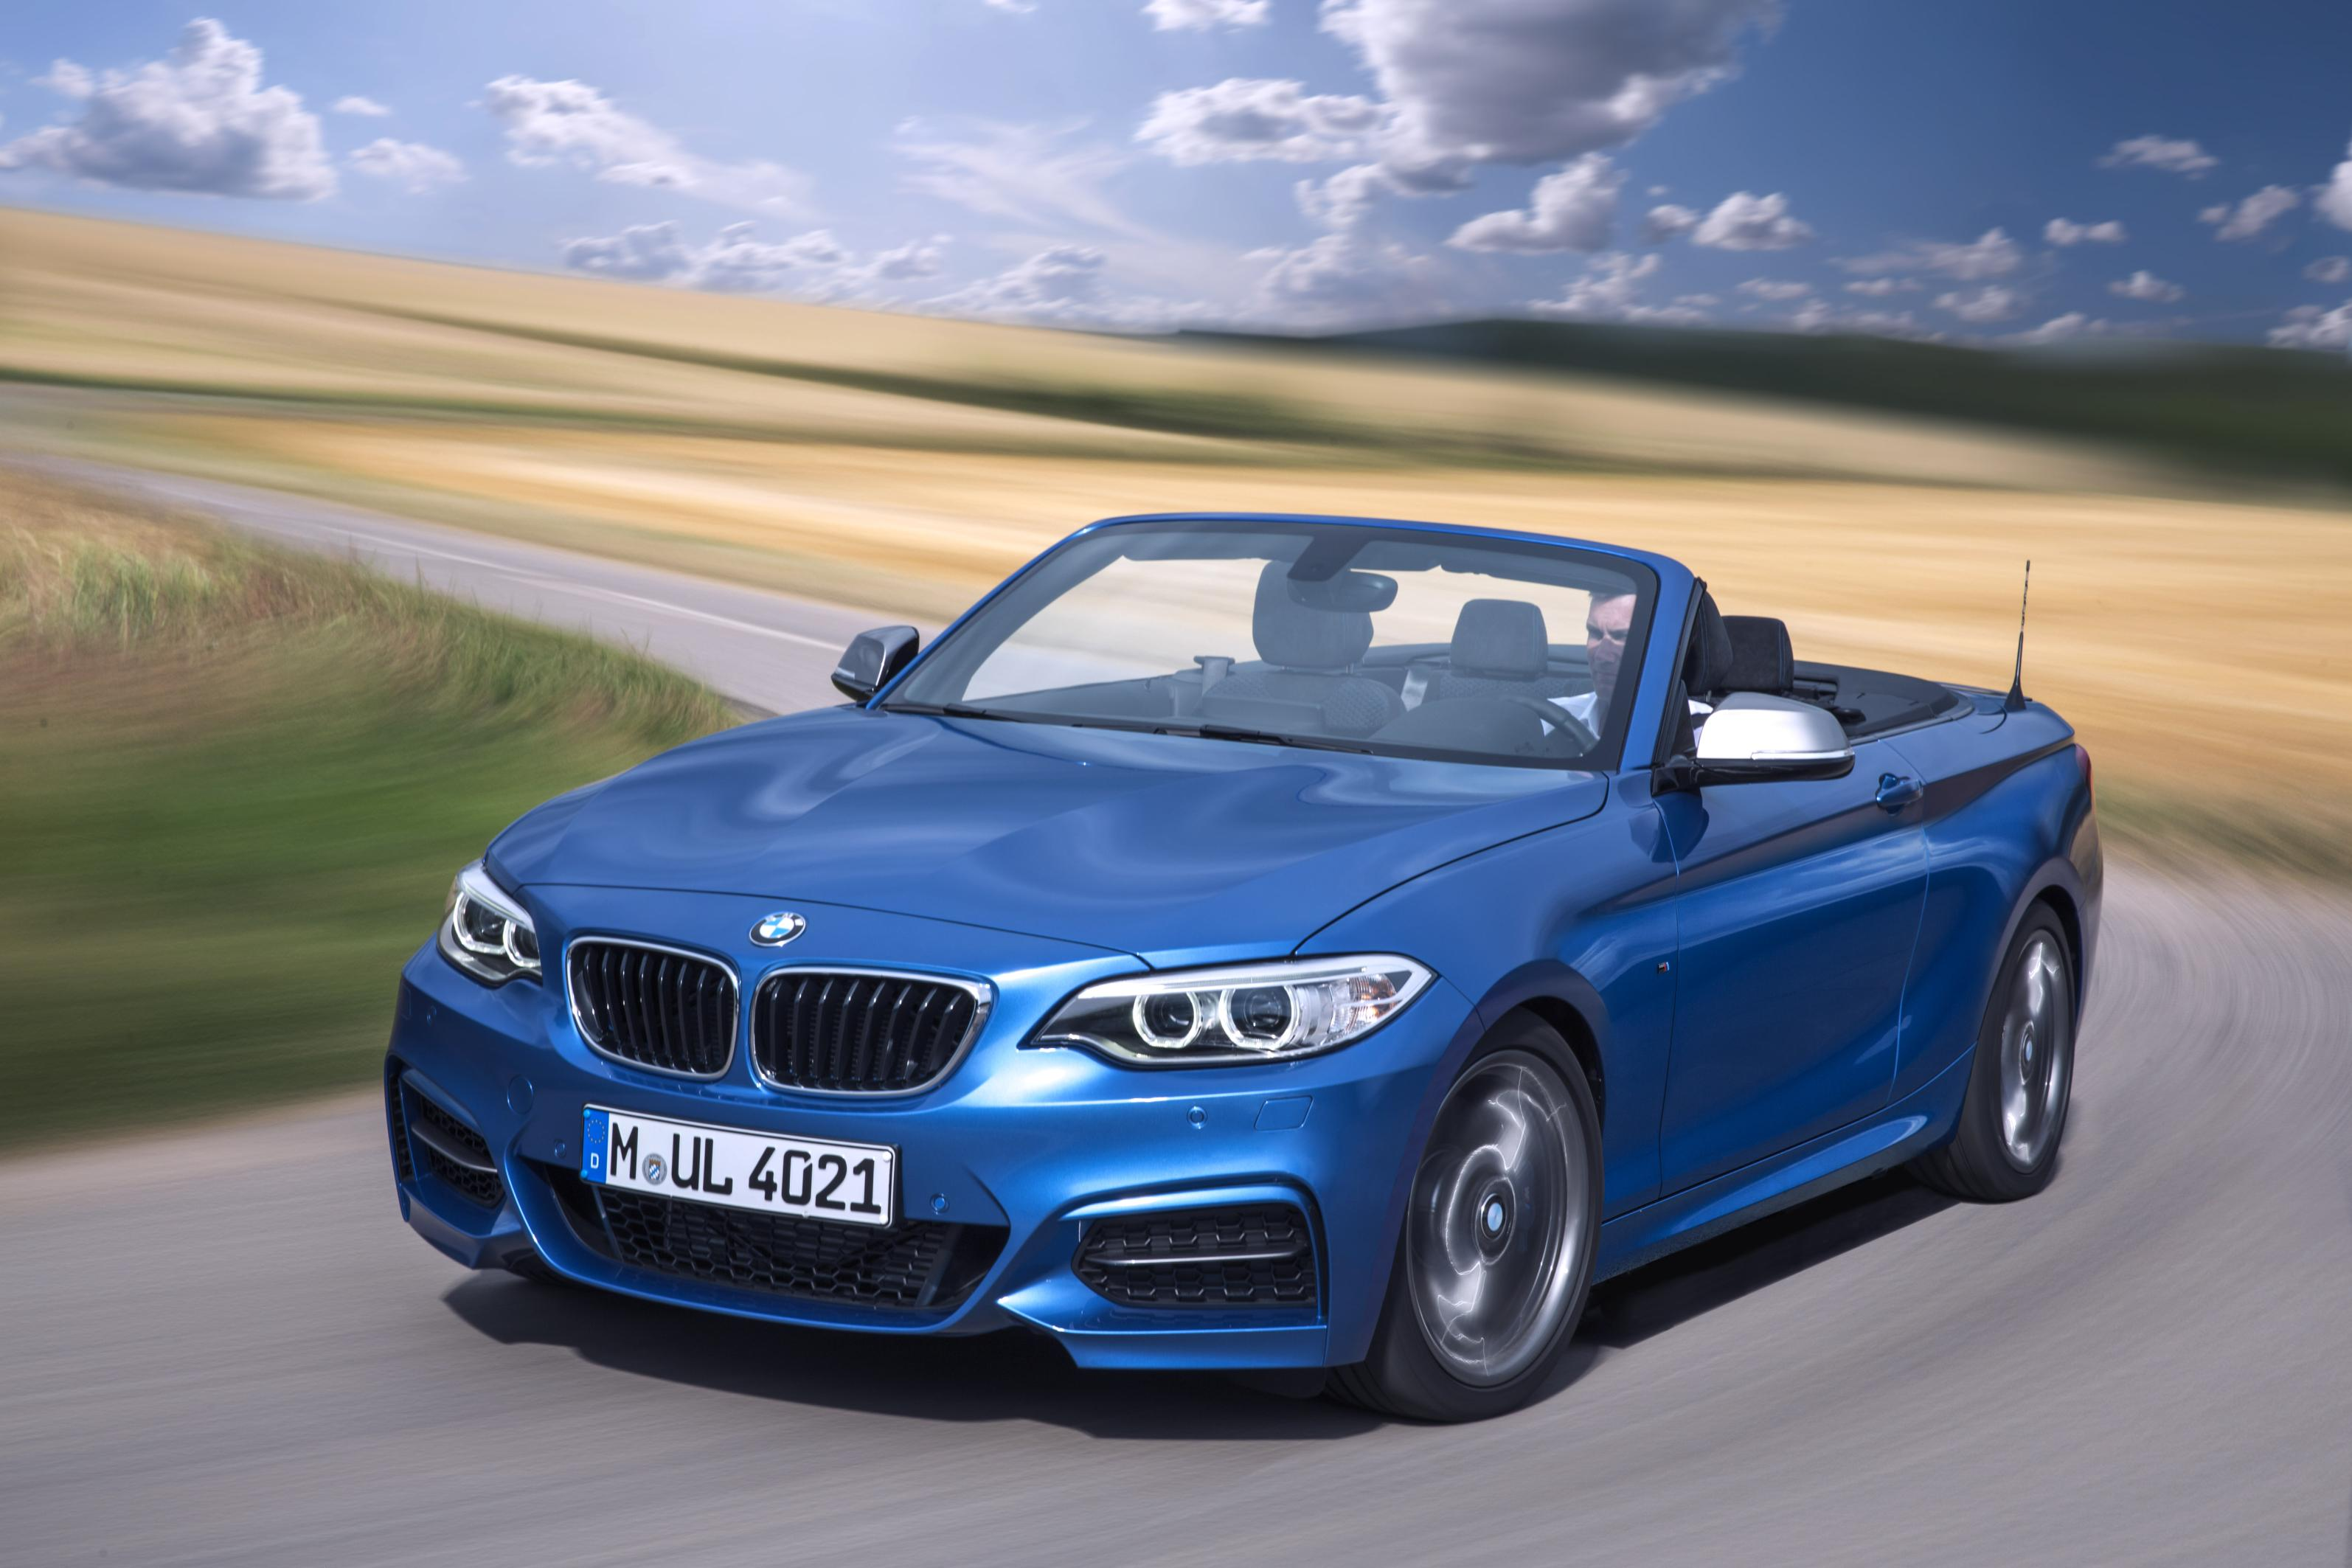 best series convertible inspirational bmw roadster saugus on use house auto at usa photo used picture edition special image of